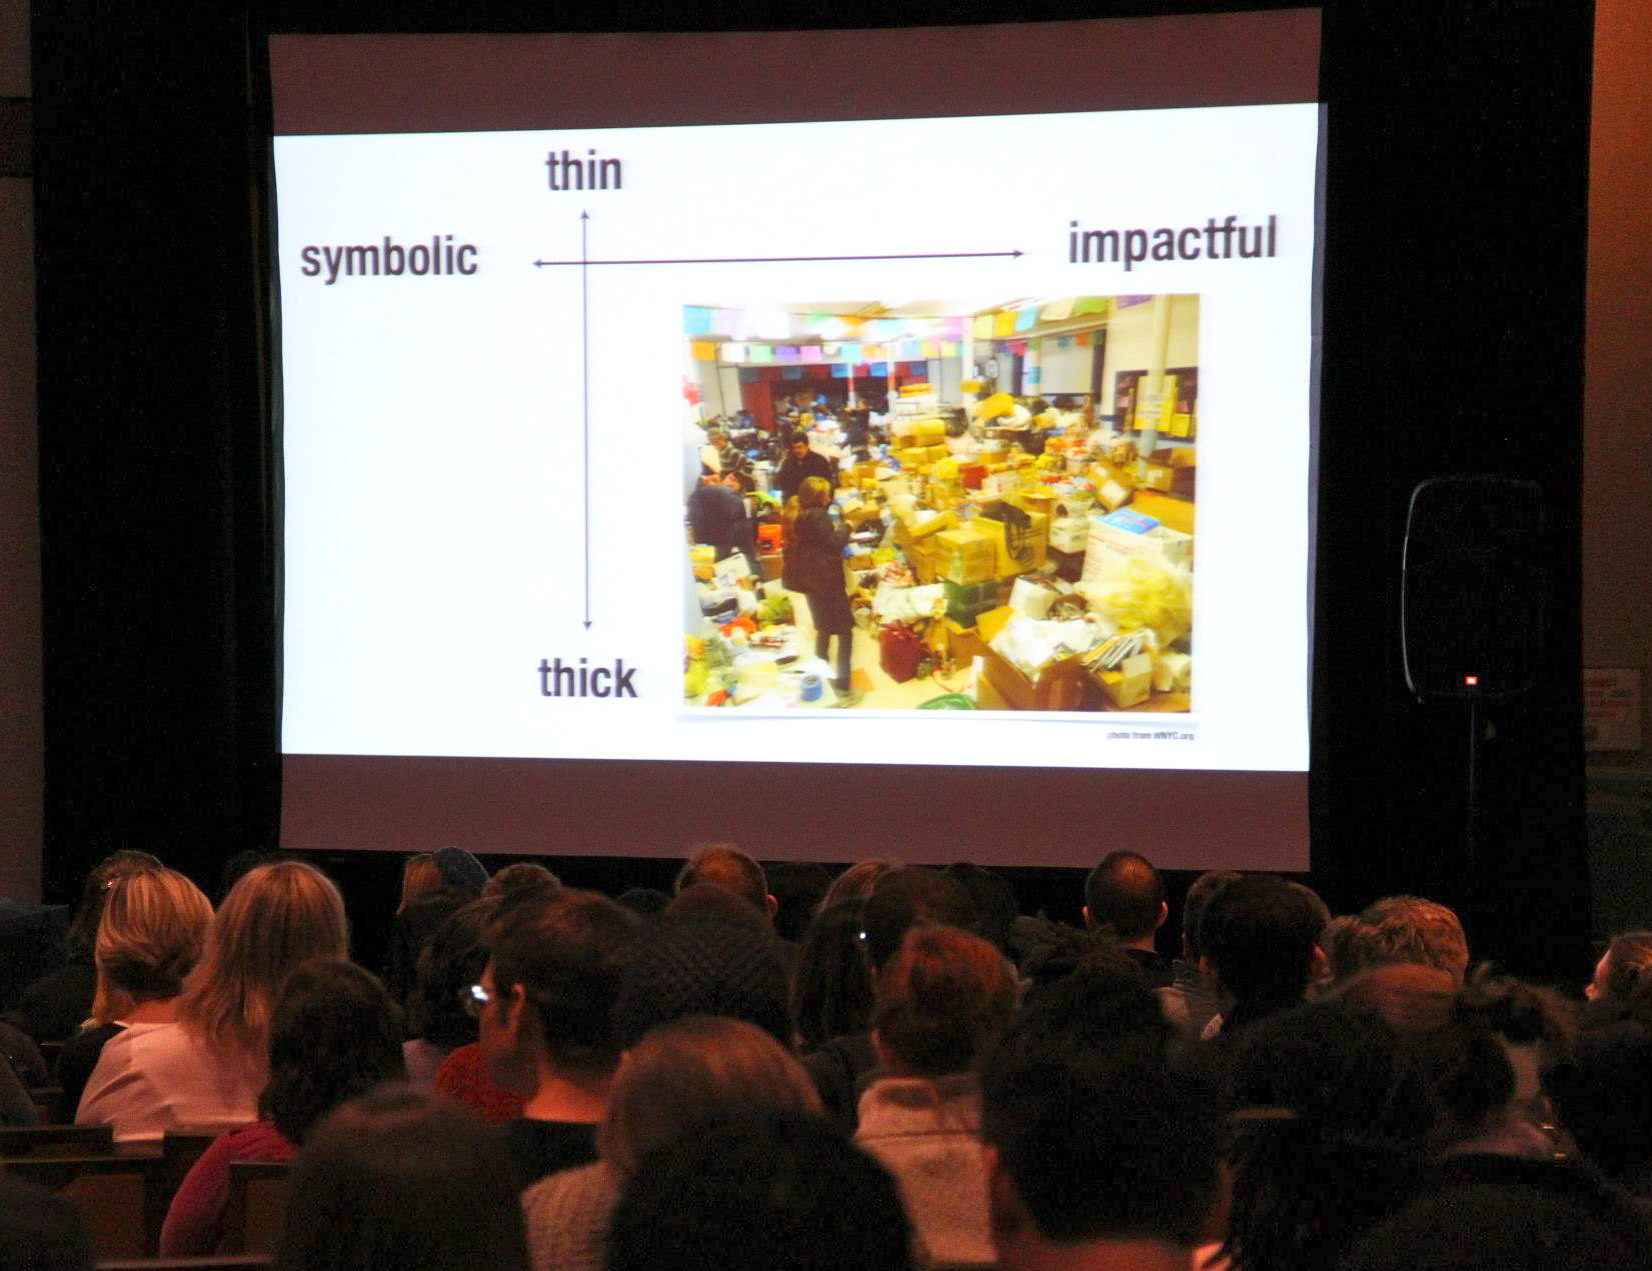 large audience watching presentation of measuring symbolism and impact